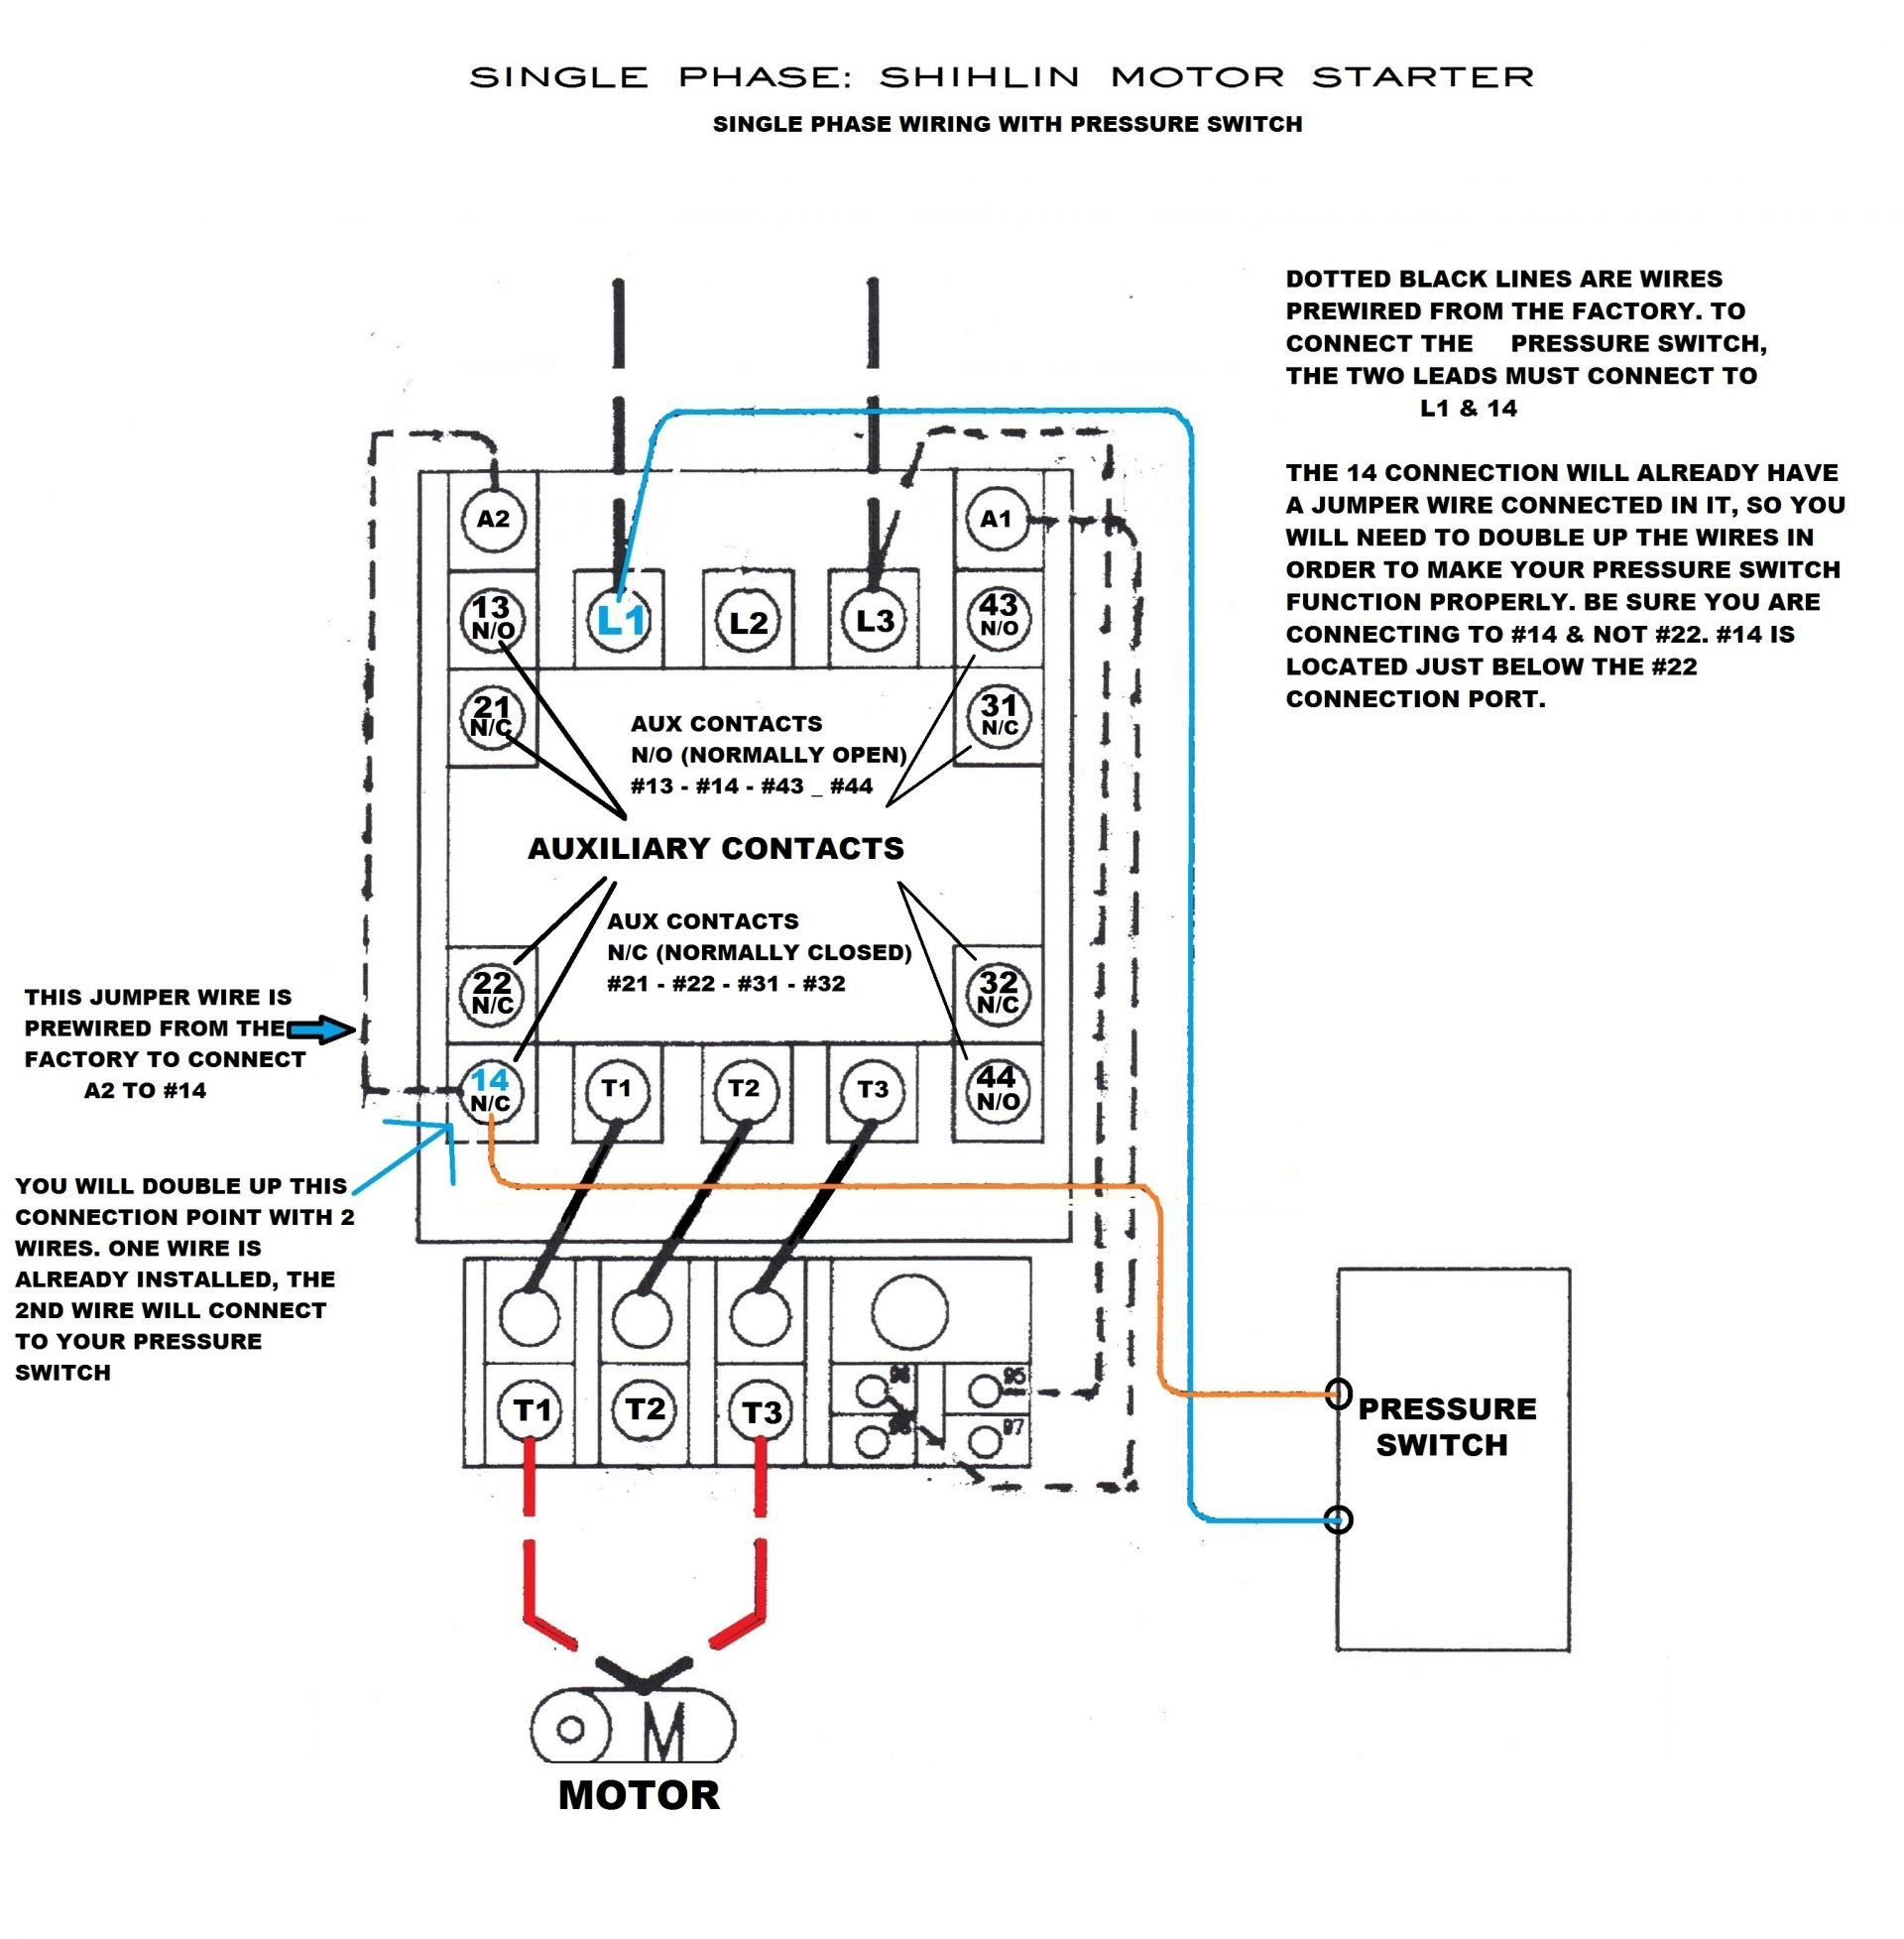 Cutler hammer magnetic starter wiring diagram gallery wiring cutler hammer magnetic starter wiring diagram collection eaton motor starter wiring diagram techrush 4 asfbconference2016 Image collections